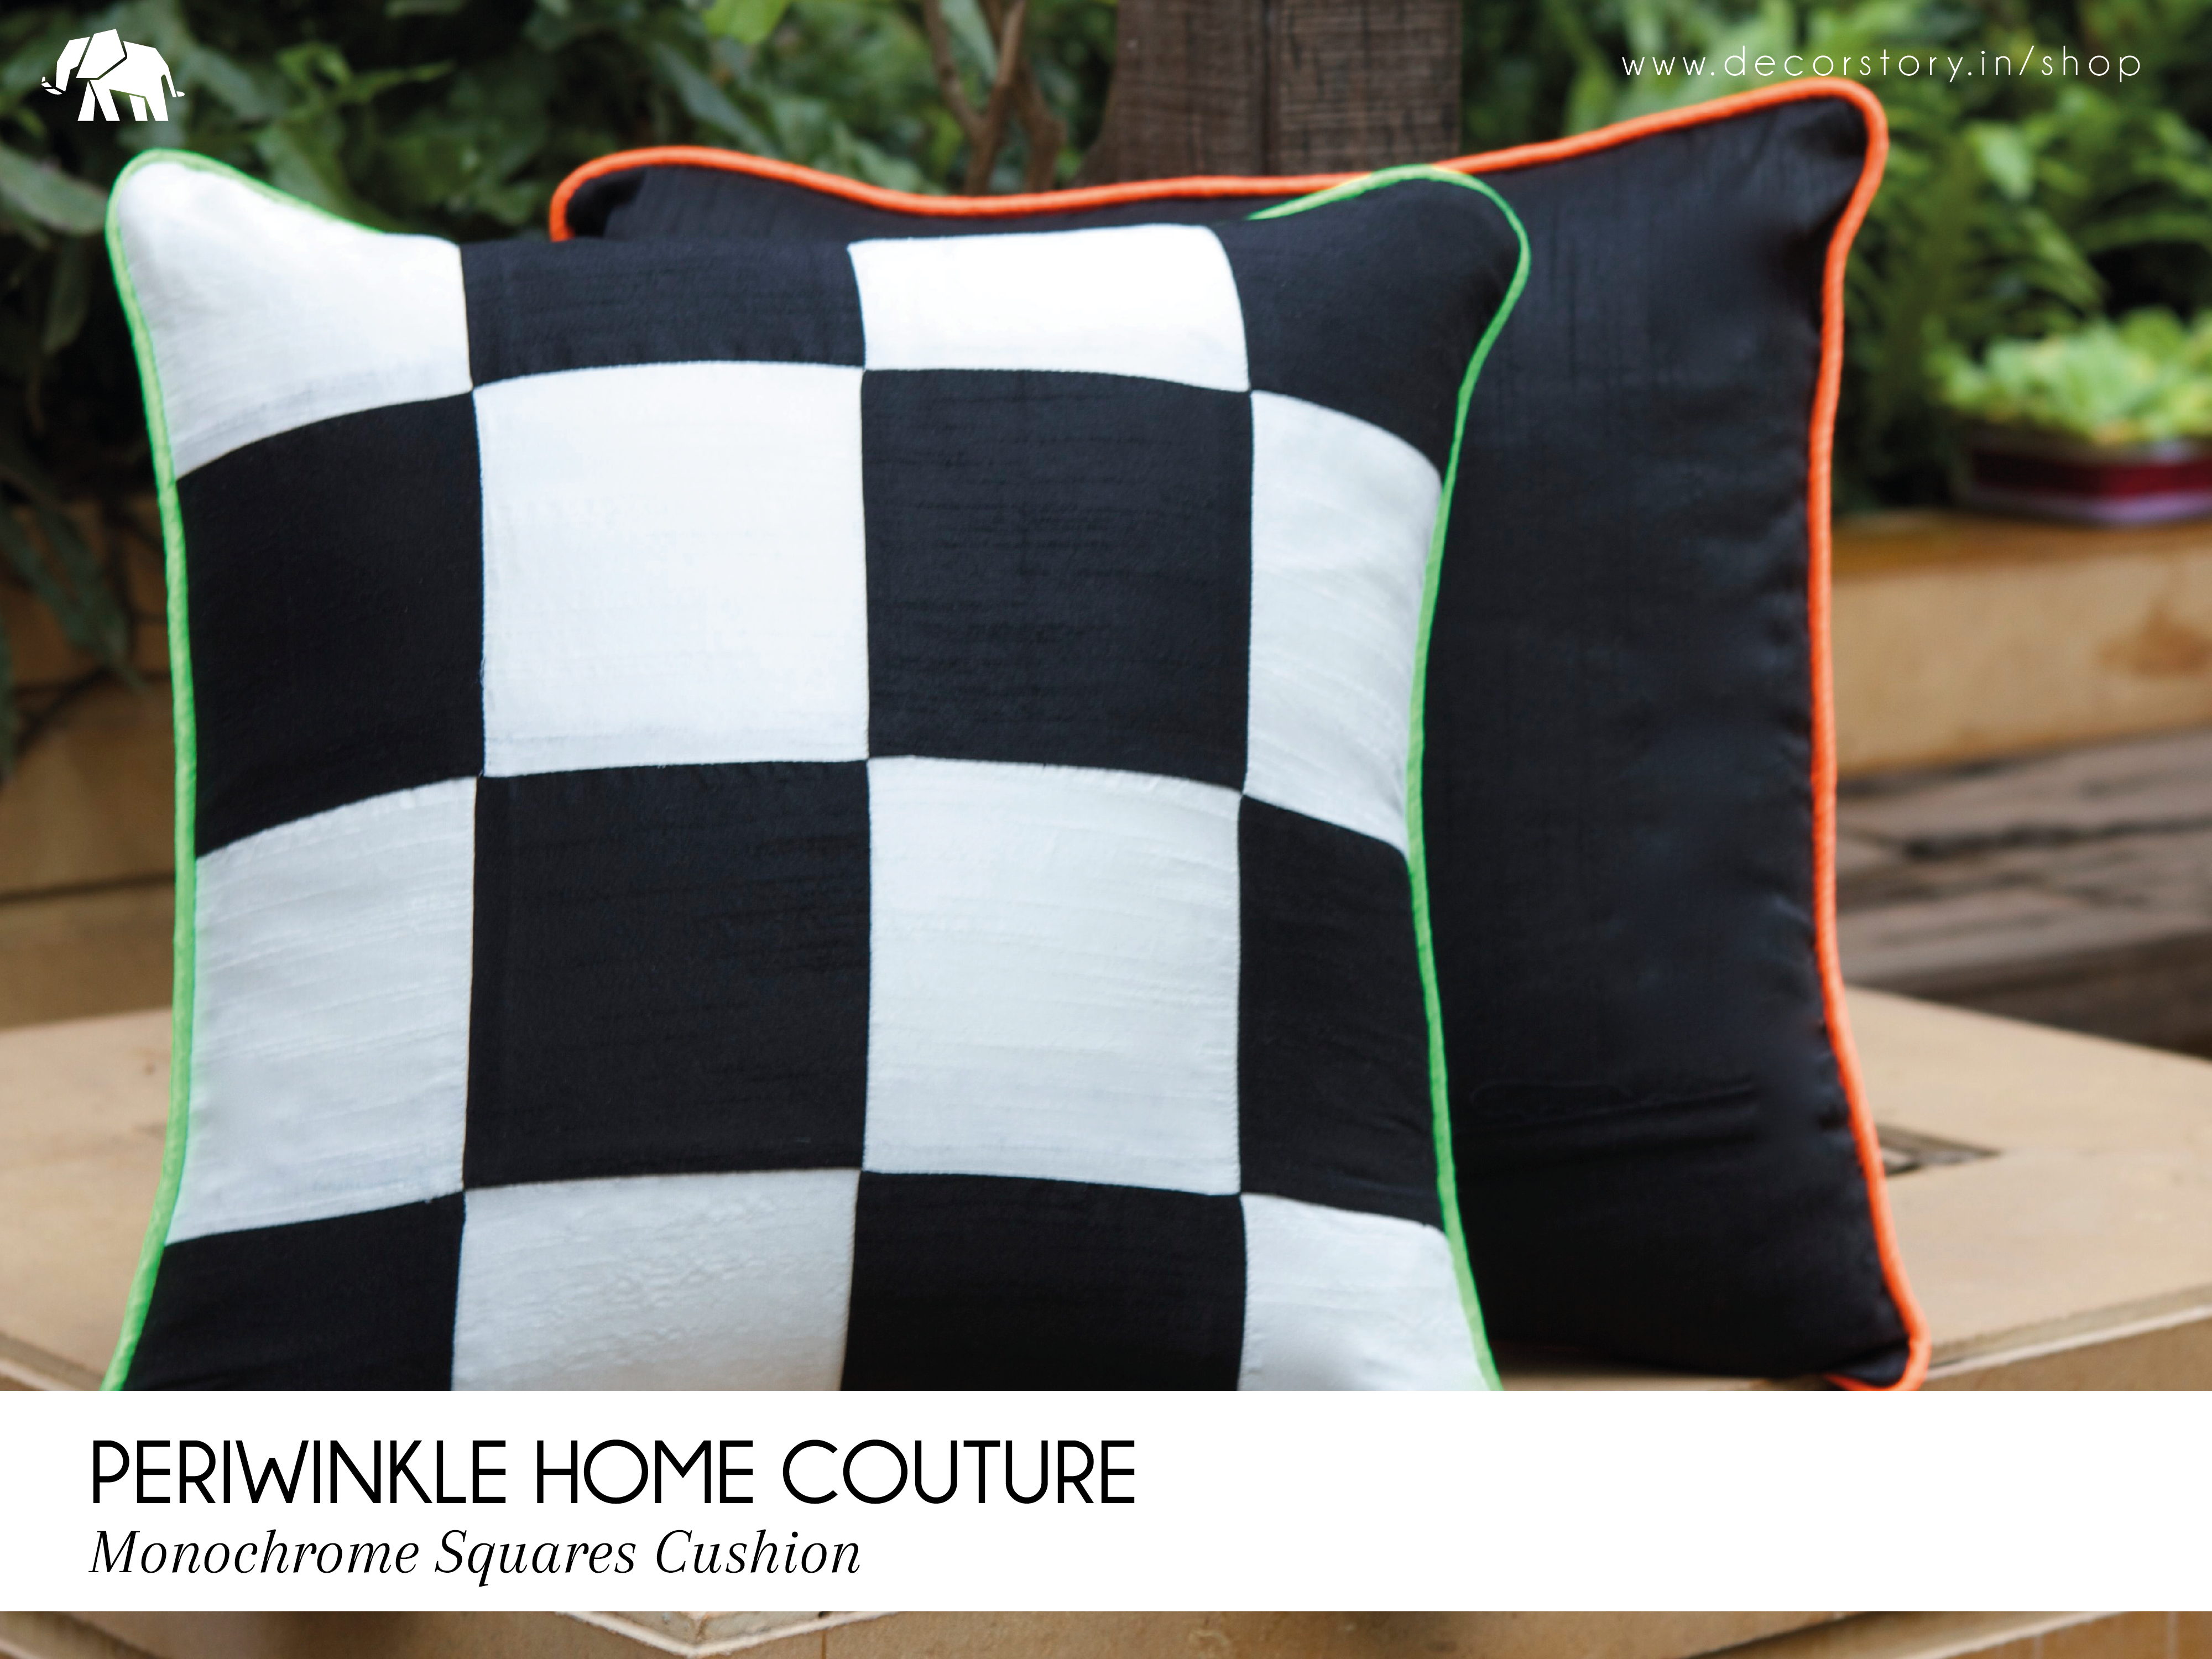 Bring in the flavor of a chessboard game into your space with this monochrome, poly silk chessboard inspired cushion cover. Create some visual drama and add a bold feel to your space! Visit www.decorstory.in to view more designs by Periwinkle Home Couture. ‪#‎DecorStory‬ ‪#‎HomeDecor‬ ‪#‎CushionCovers‬ ‪#‎HiralPawar‬ ‪#‎Chessboard‬ ‪#‎Minochrome‬ ‪#‎Drama‬ ‪#‎Bold‬ ‪#‎Unique‬ ‪#‎BlackAndWhite‬